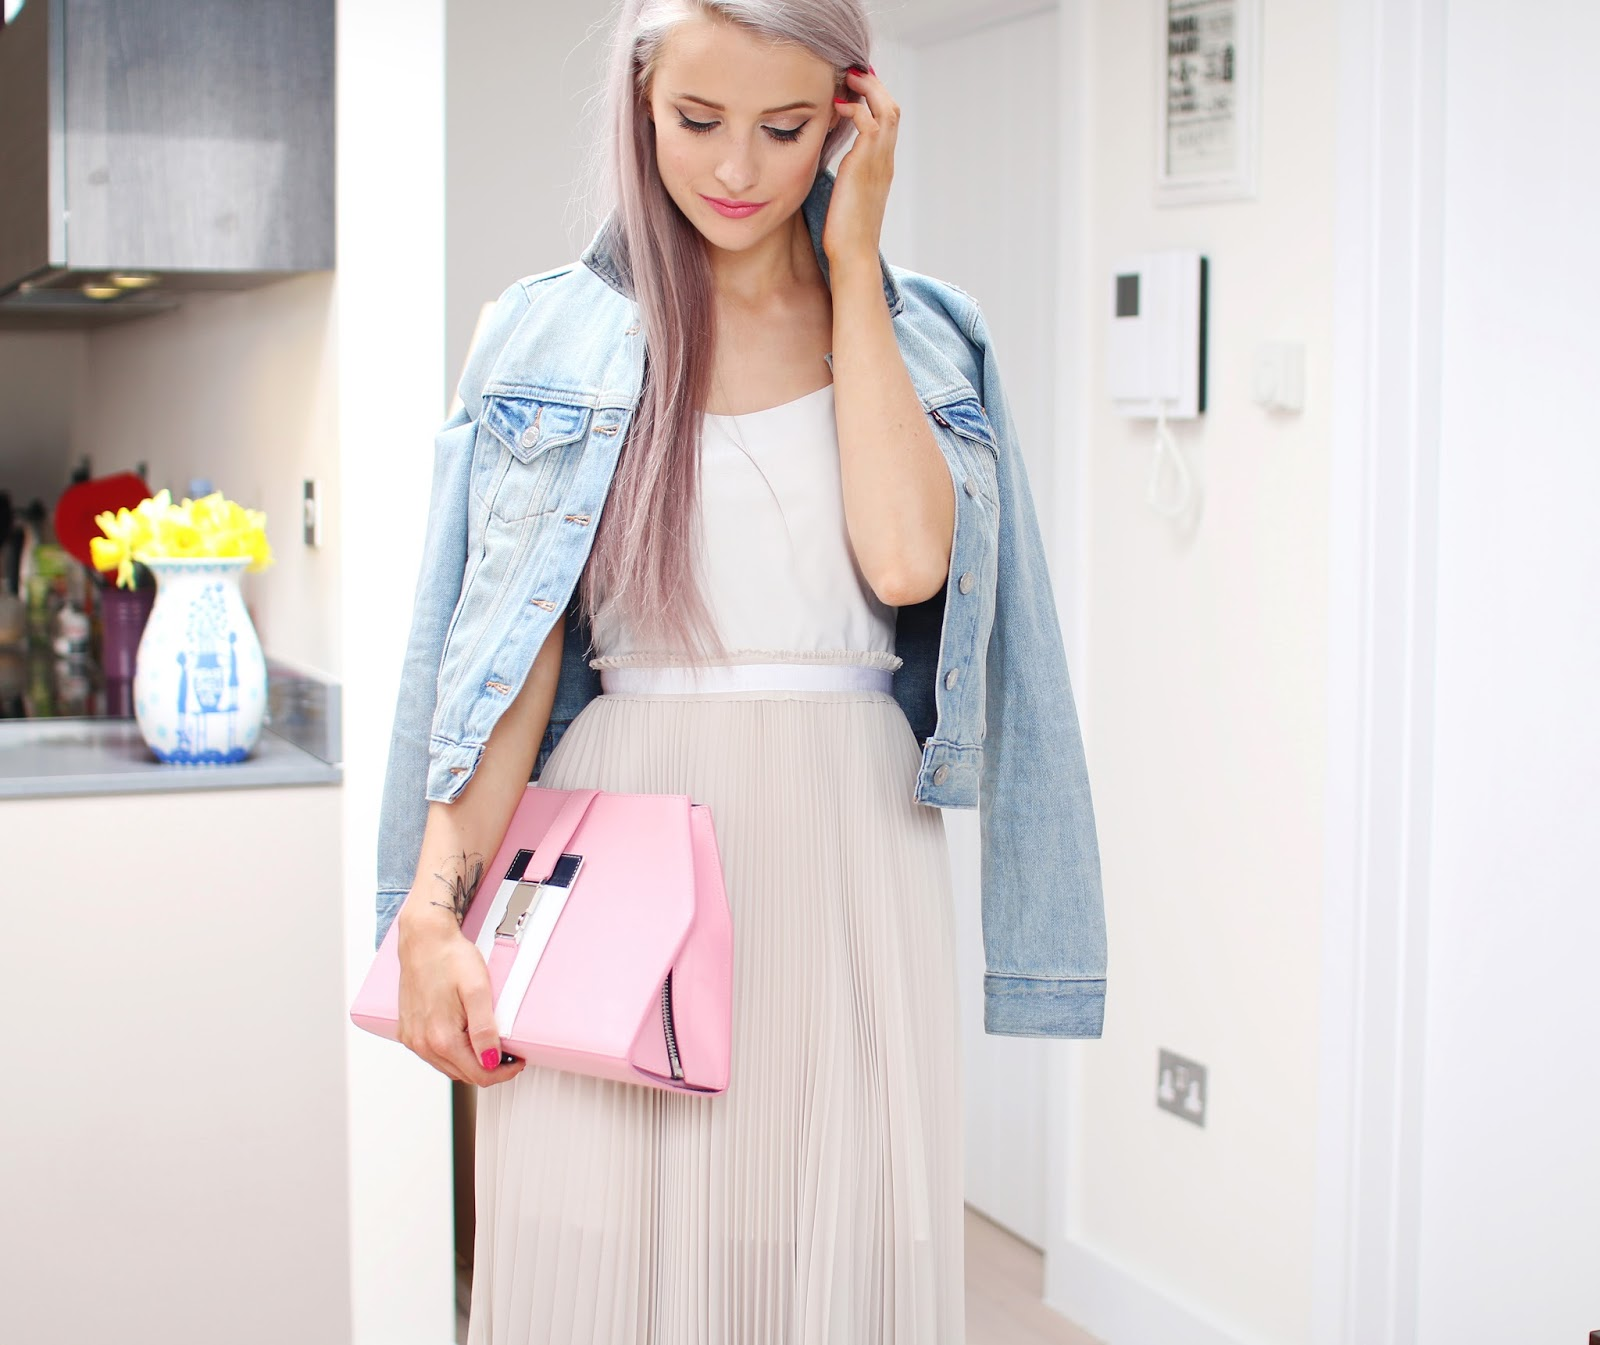 The Romantic Summer Dress - Inthefrow